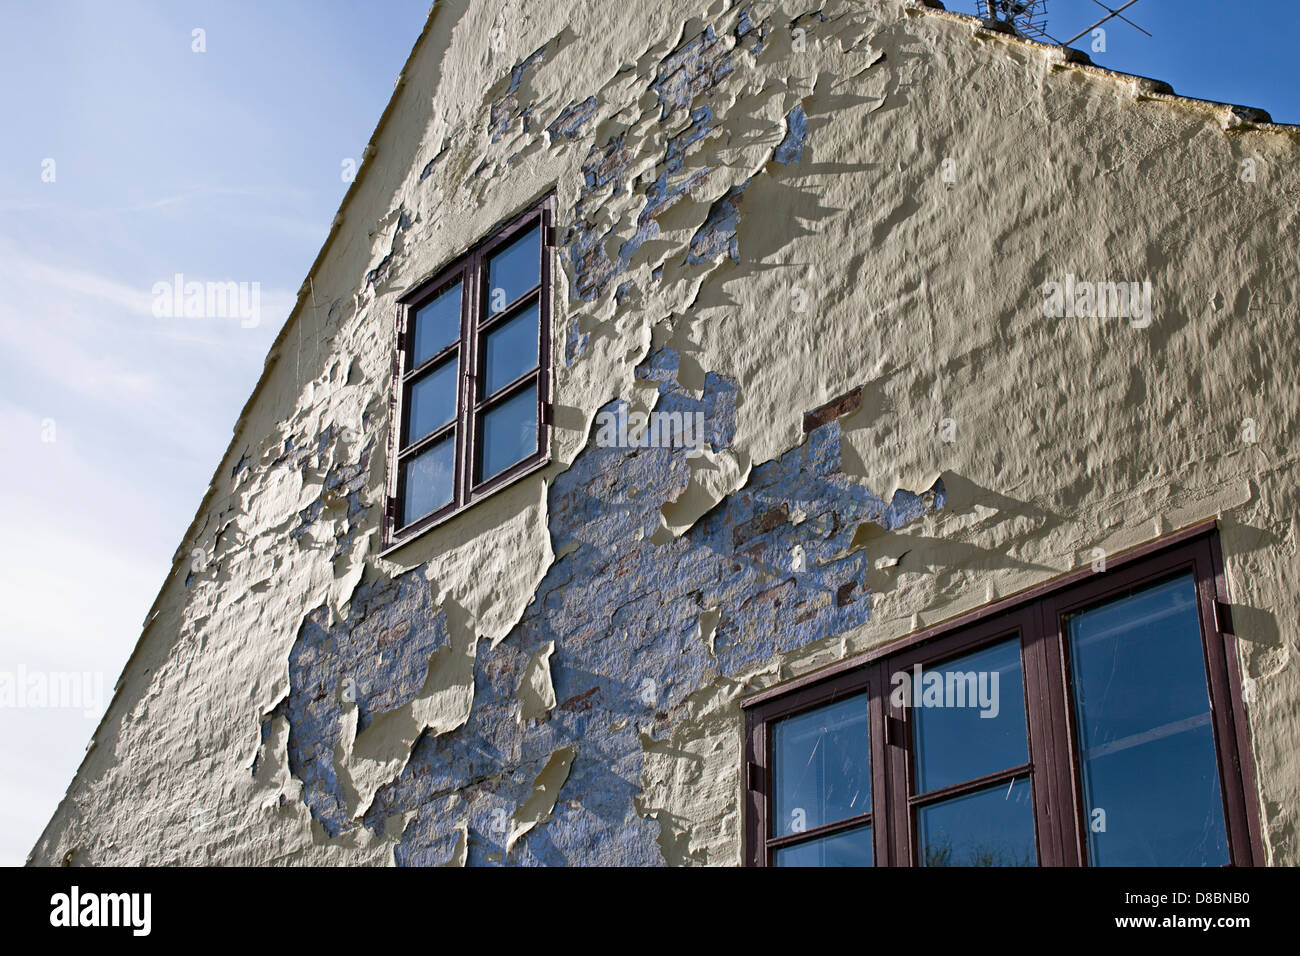 House facade in need of restoration - Stock Image